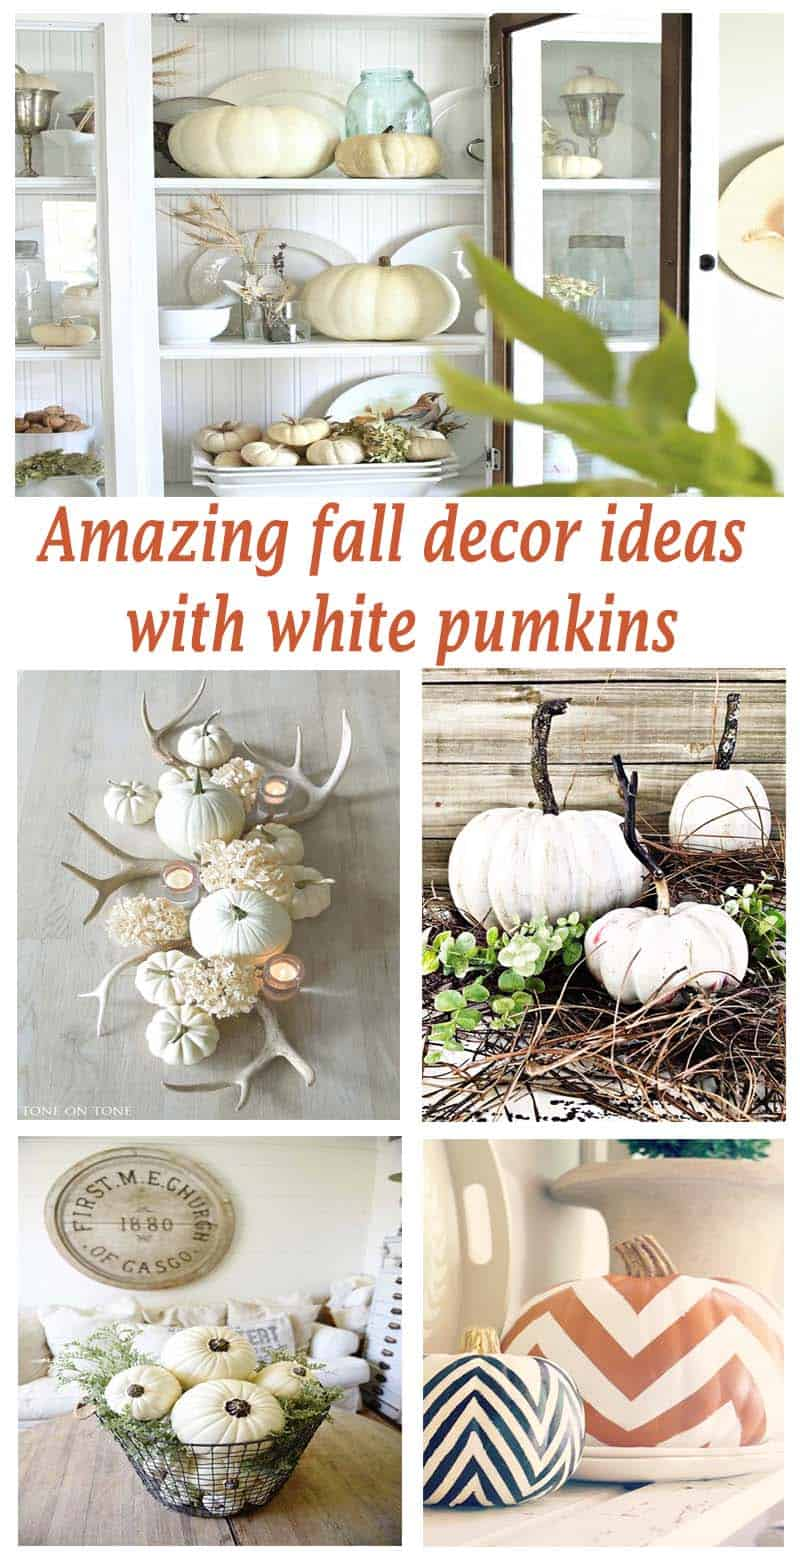 fall-decorating-ideas-white-pumpkins-000-1-kindesign  sc 1 st  One Kindesign & 31 Amazing fall decorating ideas using white pumpkins